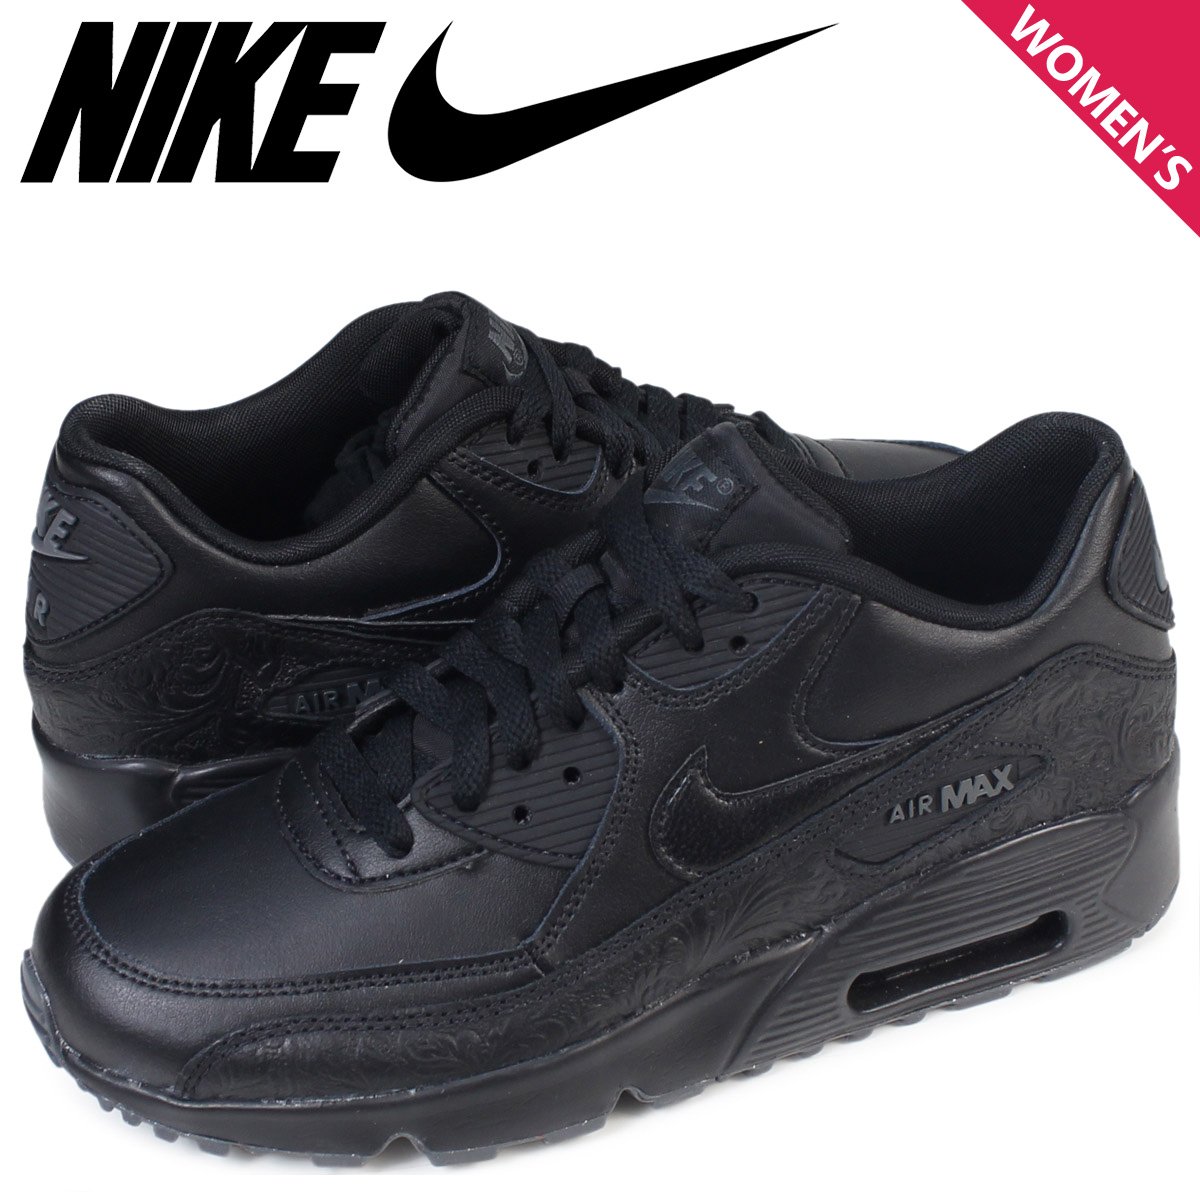 Nike NIKE Air Max 90 Lady's sneakers AIR MAX 90 LEATHER GS 833,412 001 black black [197]